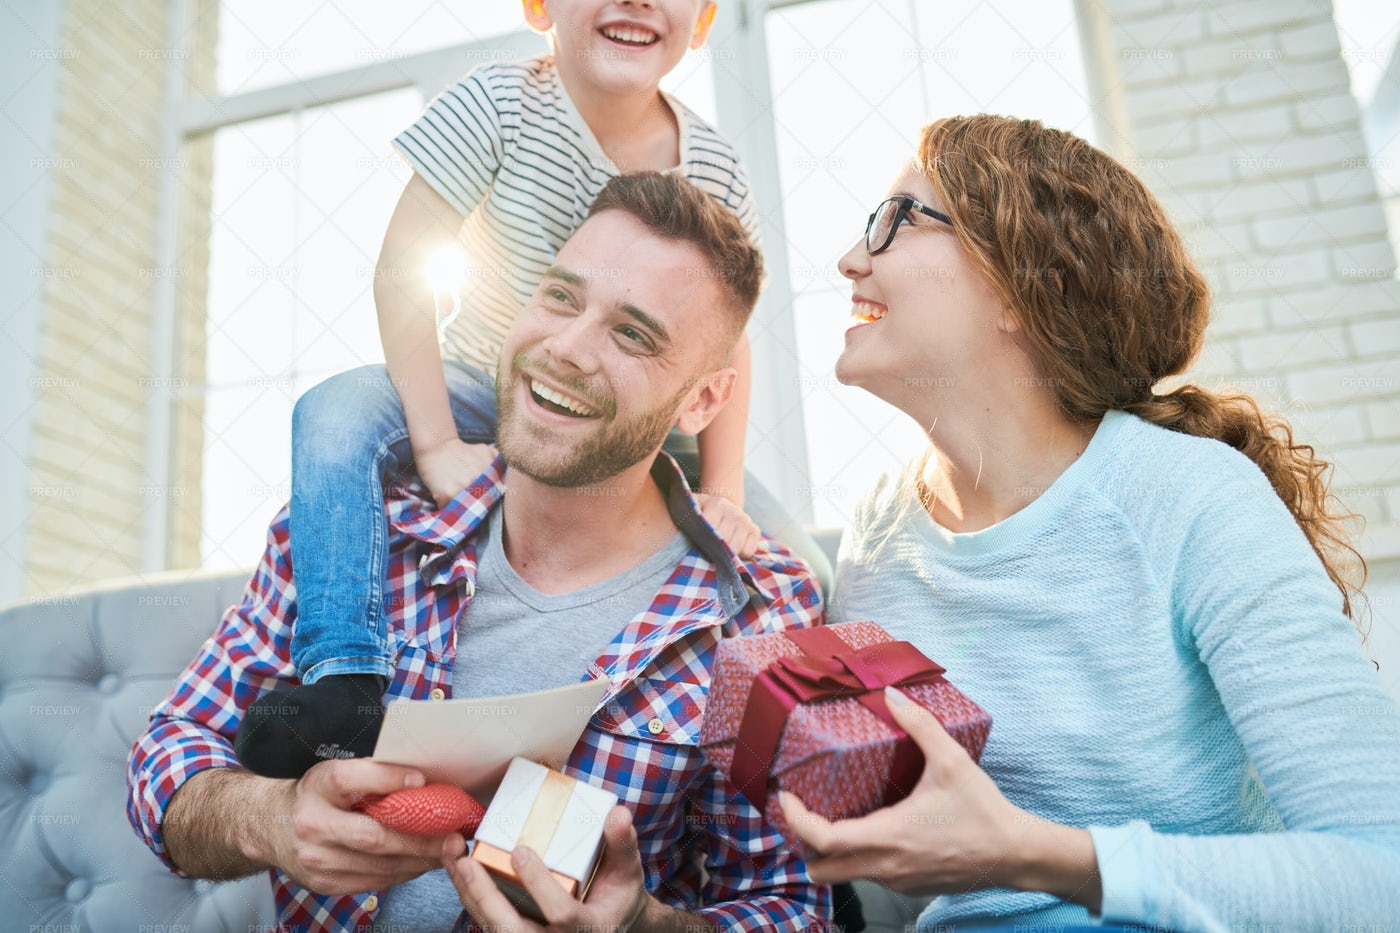 Playful Young Family In Sunlight: Stock Photos